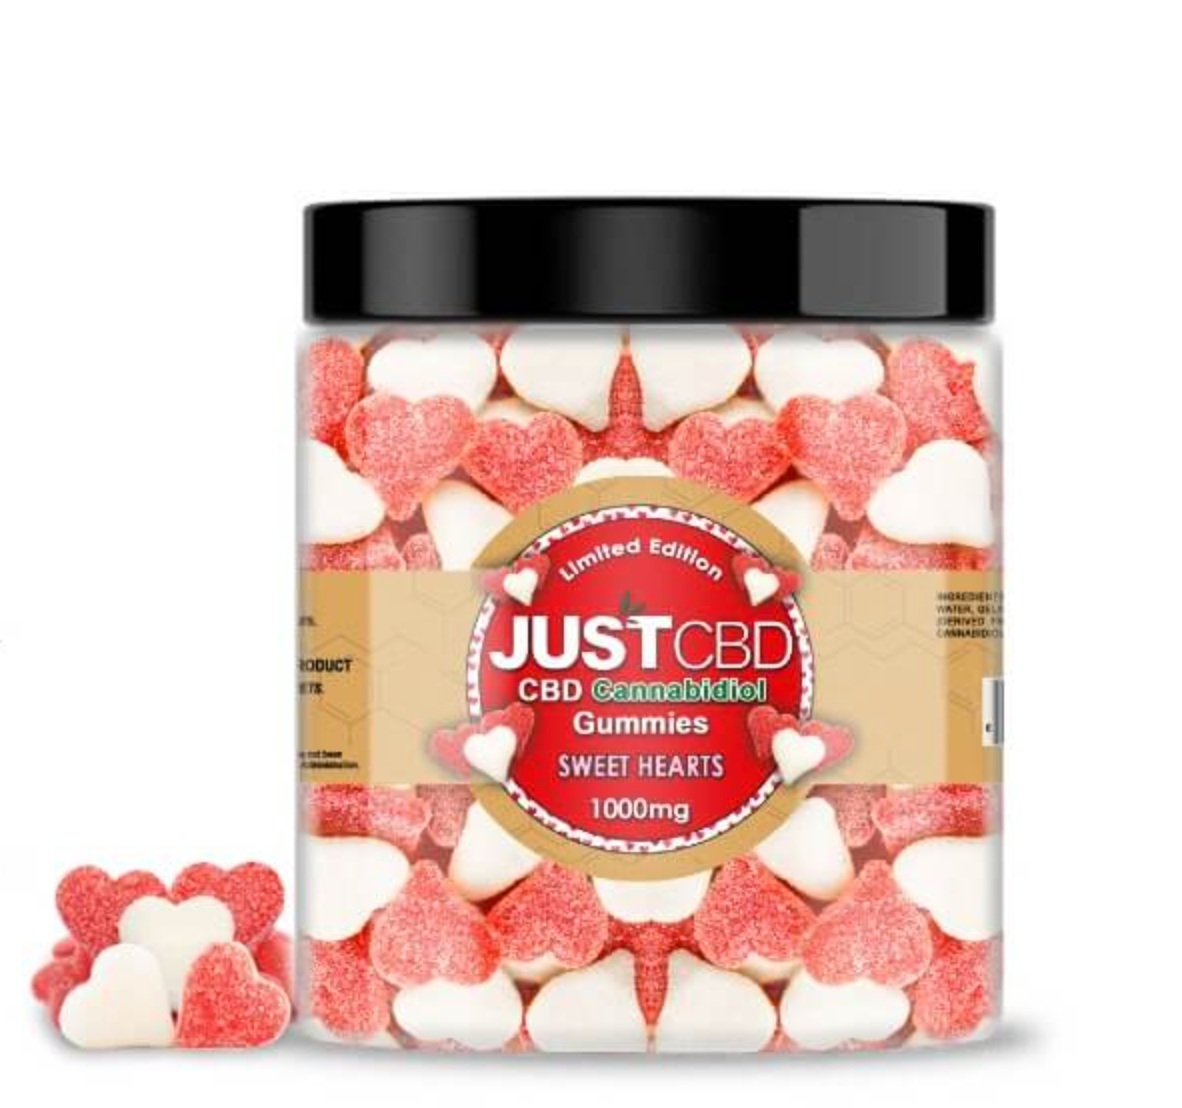 JustCBD gummies red and white hearts